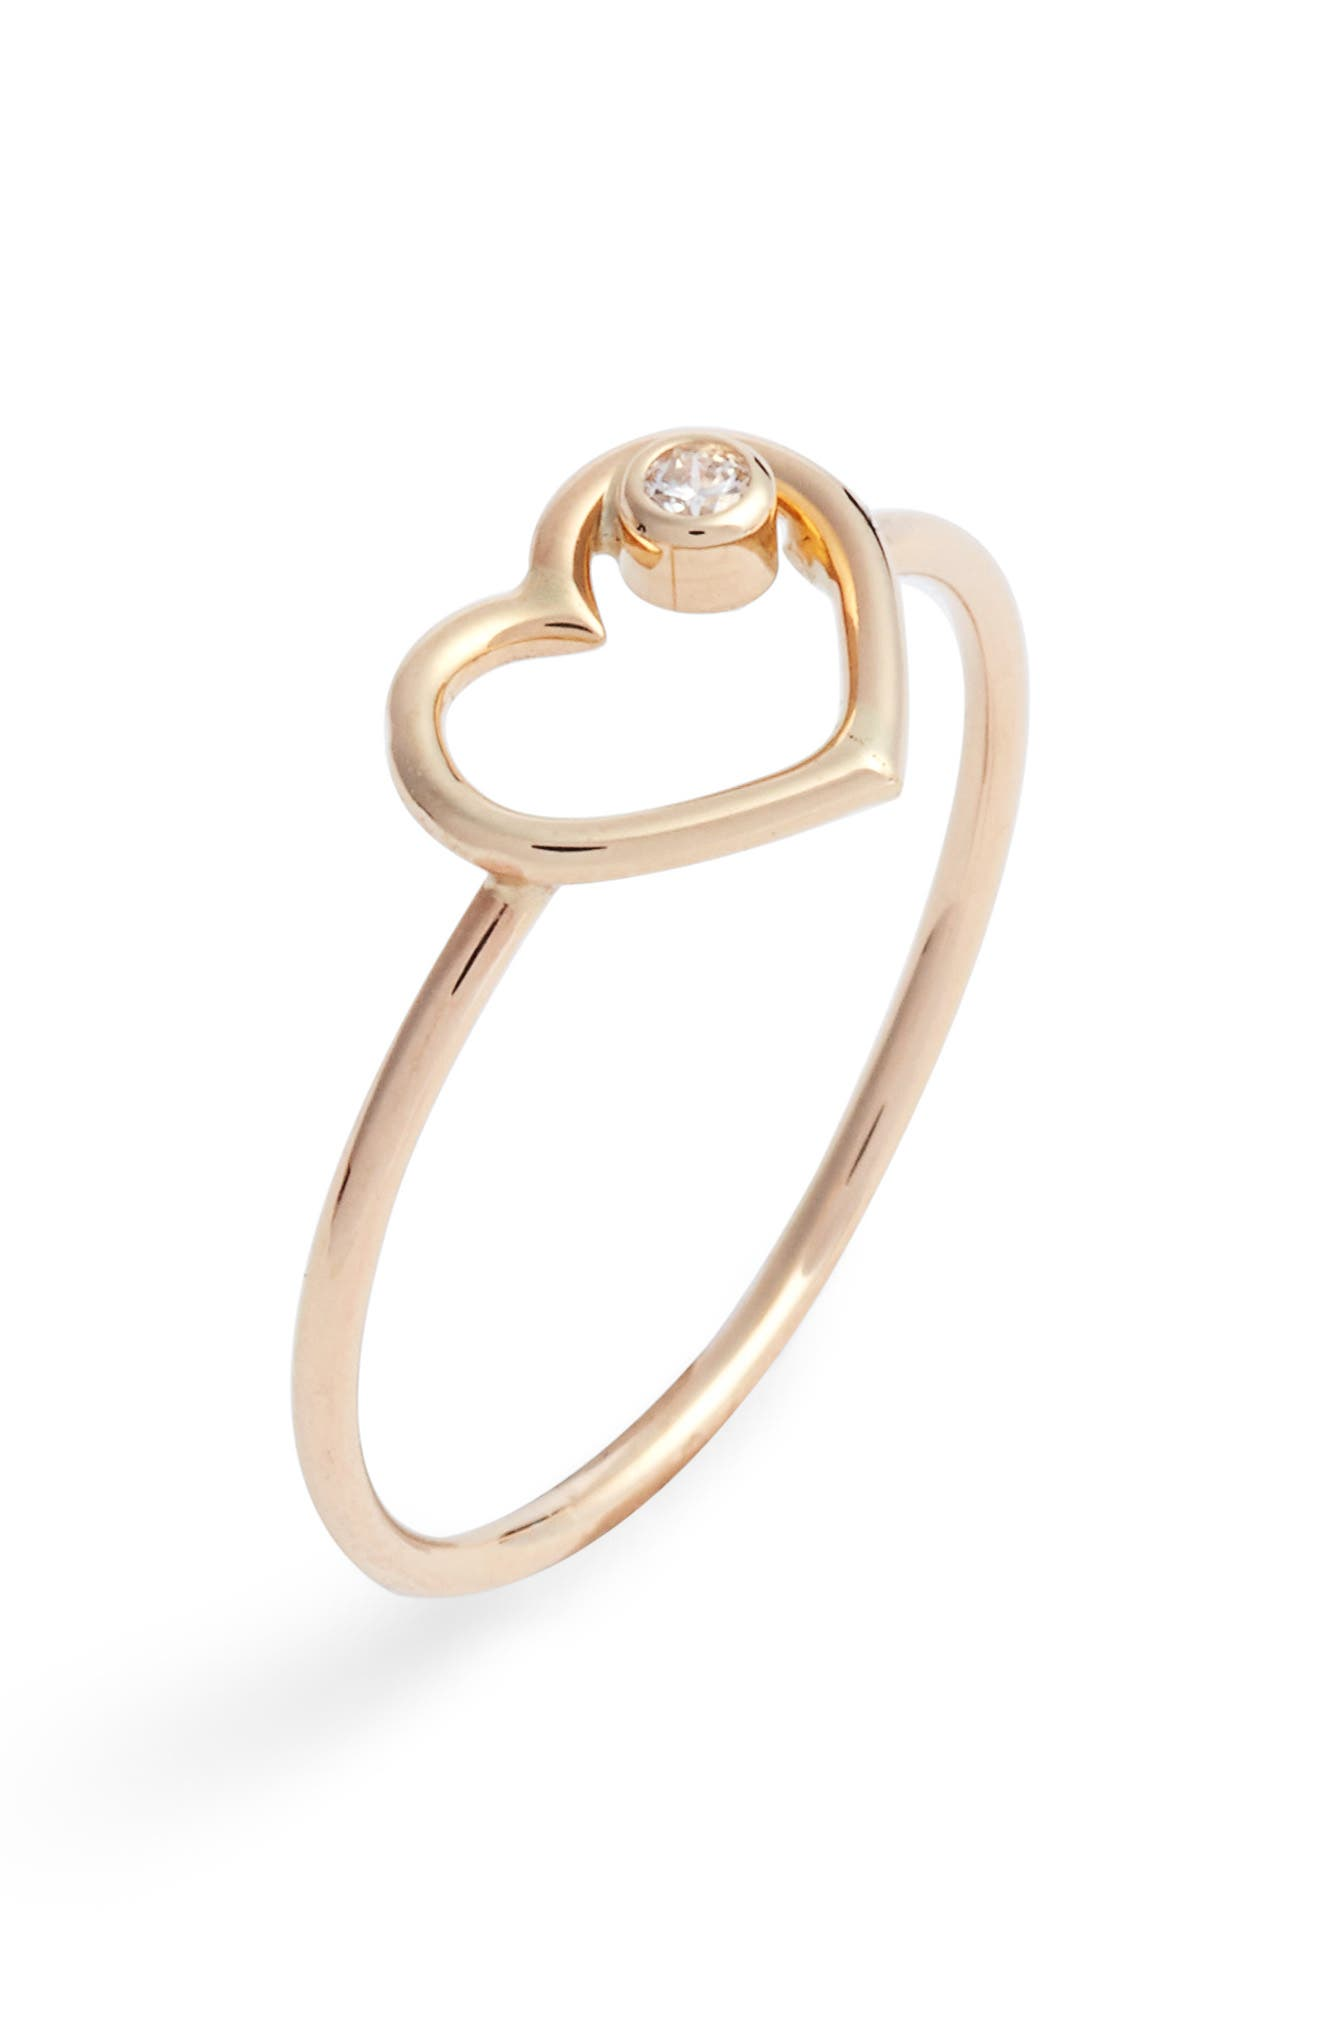 Poppy Finch Heart of Diamond Ring